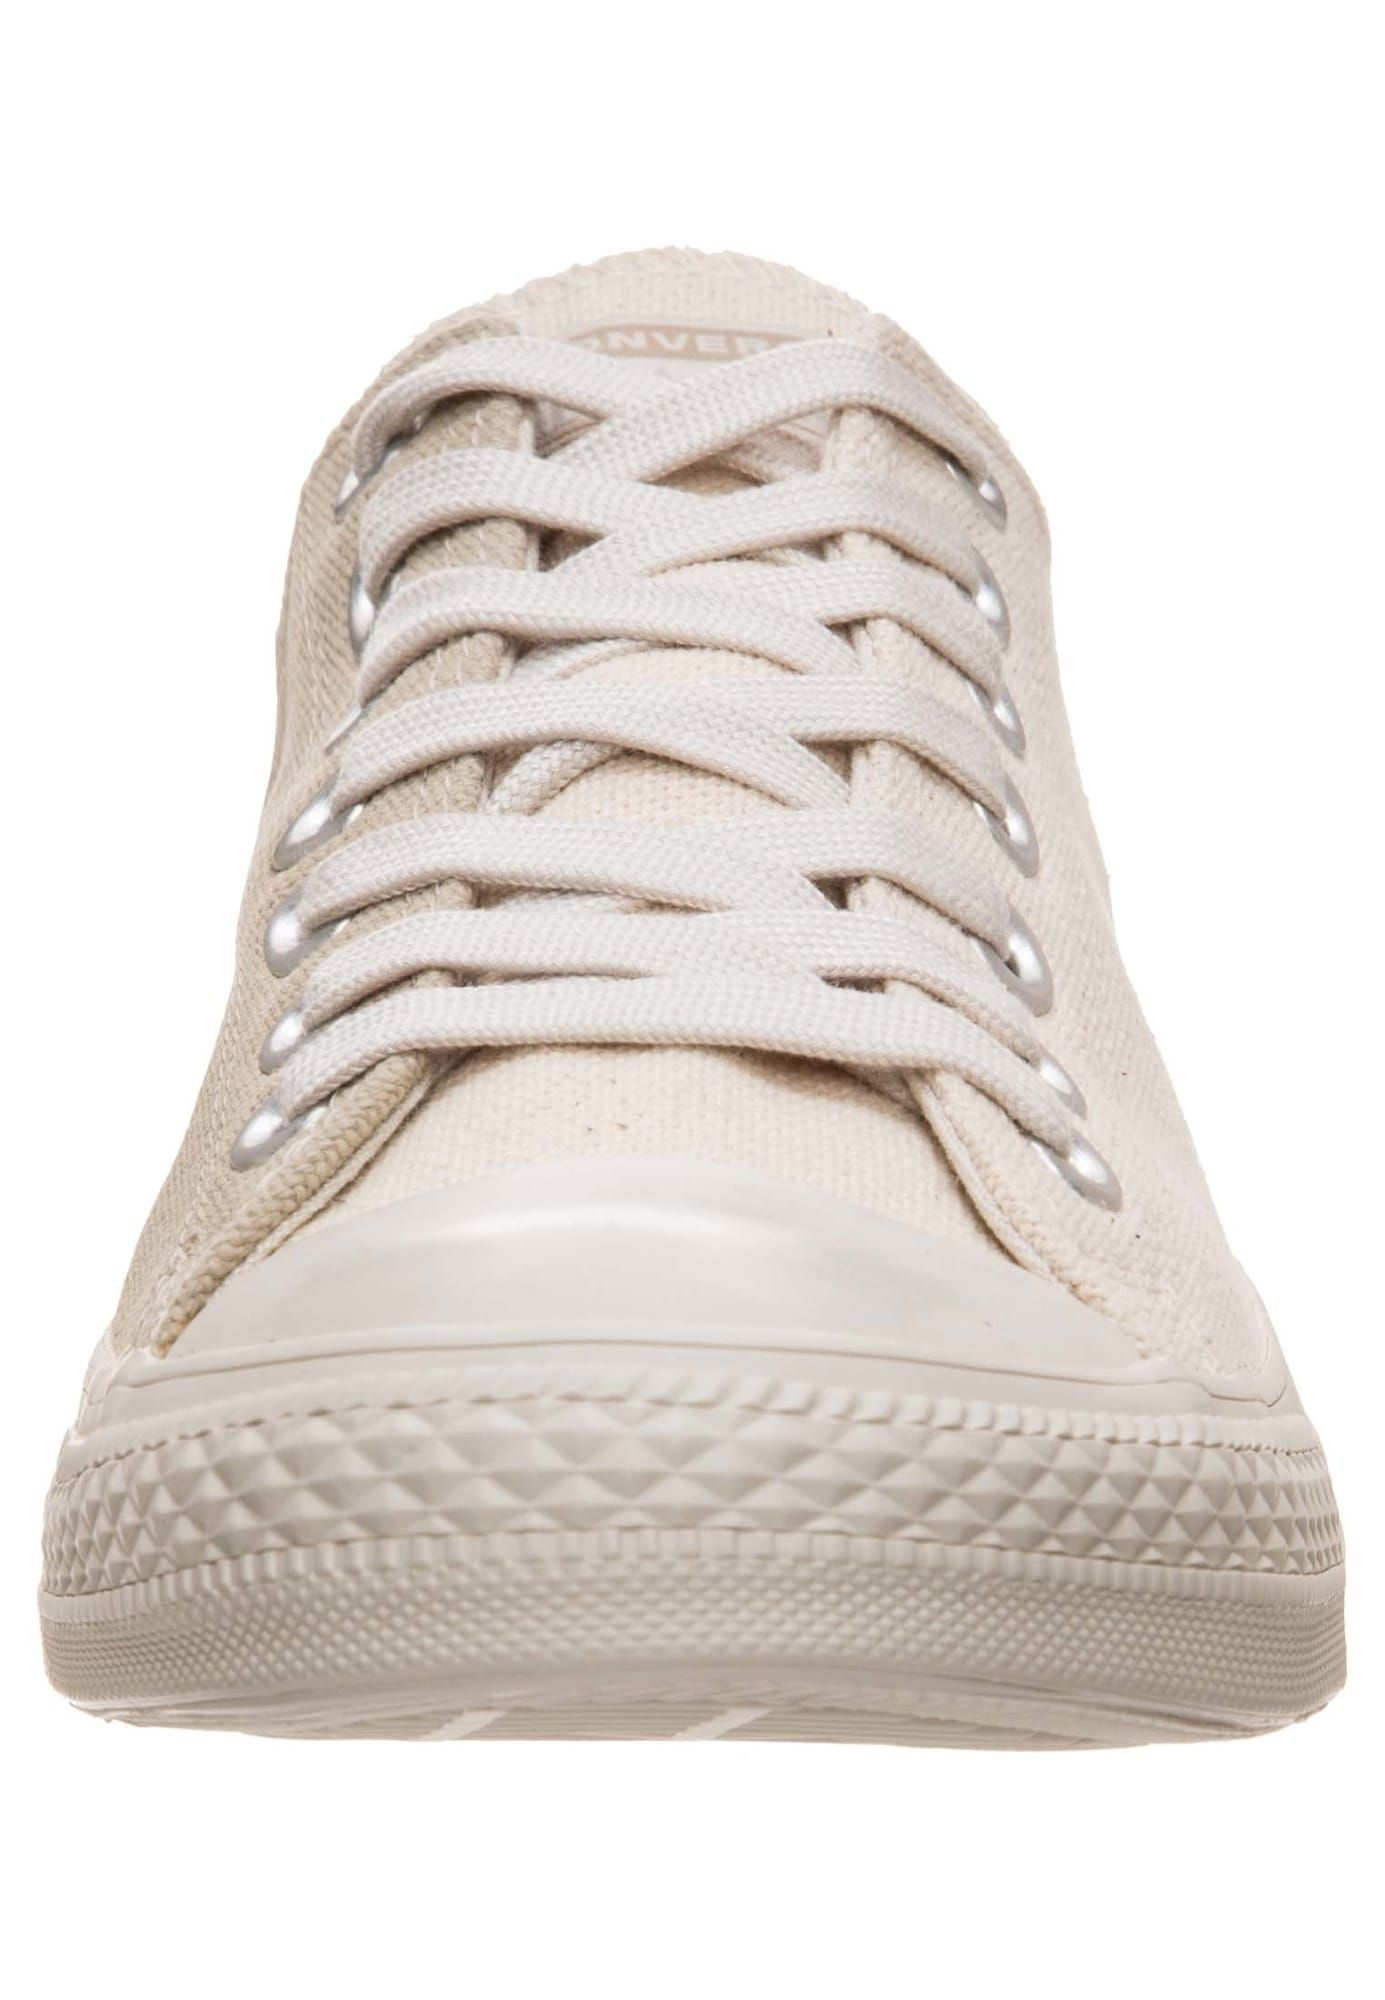 CONVERSE Sneaker 'Chuck Taylor All Star OX' in beige oliv